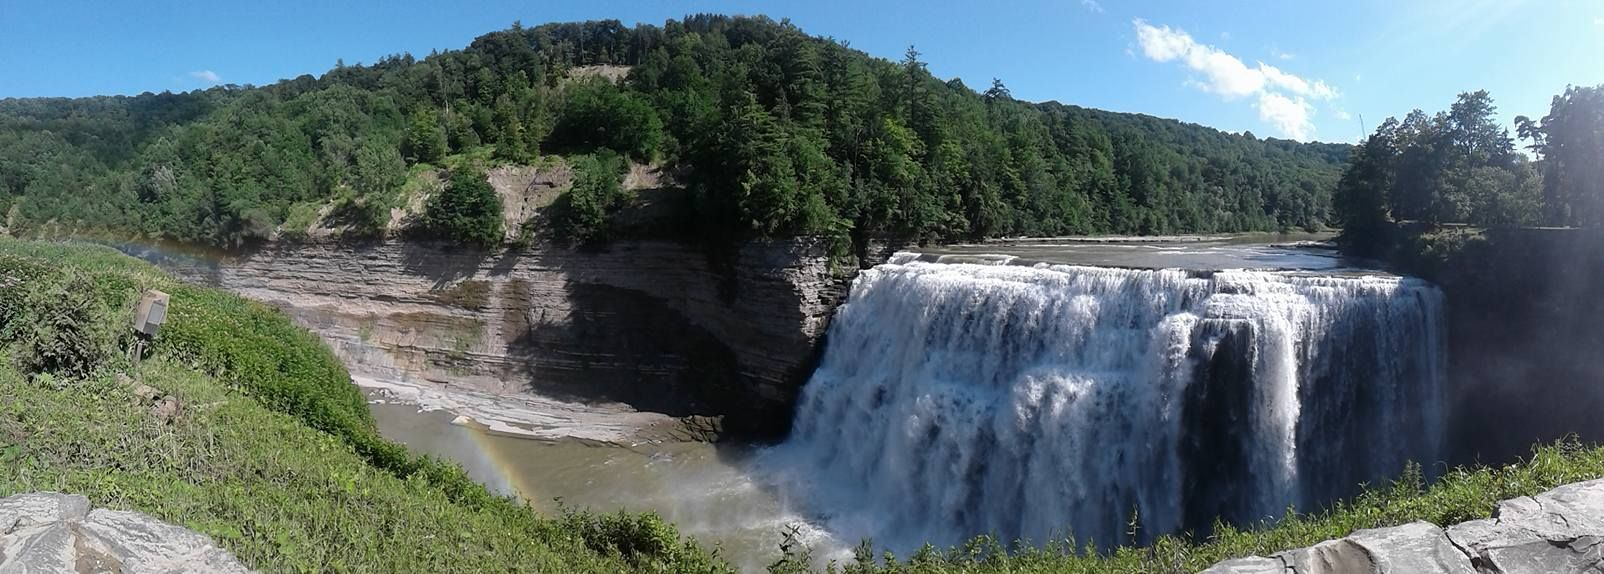 Letchworth State Park and Akron Falls Park.NY #letchworthstatepark Letchworth State Park and Akron Falls Park.NY #letchworthstatepark Letchworth State Park and Akron Falls Park.NY #letchworthstatepark Letchworth State Park and Akron Falls Park.NY #letchworthstatepark Letchworth State Park and Akron Falls Park.NY #letchworthstatepark Letchworth State Park and Akron Falls Park.NY #letchworthstatepark Letchworth State Park and Akron Falls Park.NY #letchworthstatepark Letchworth State Park and Akron #letchworthstatepark